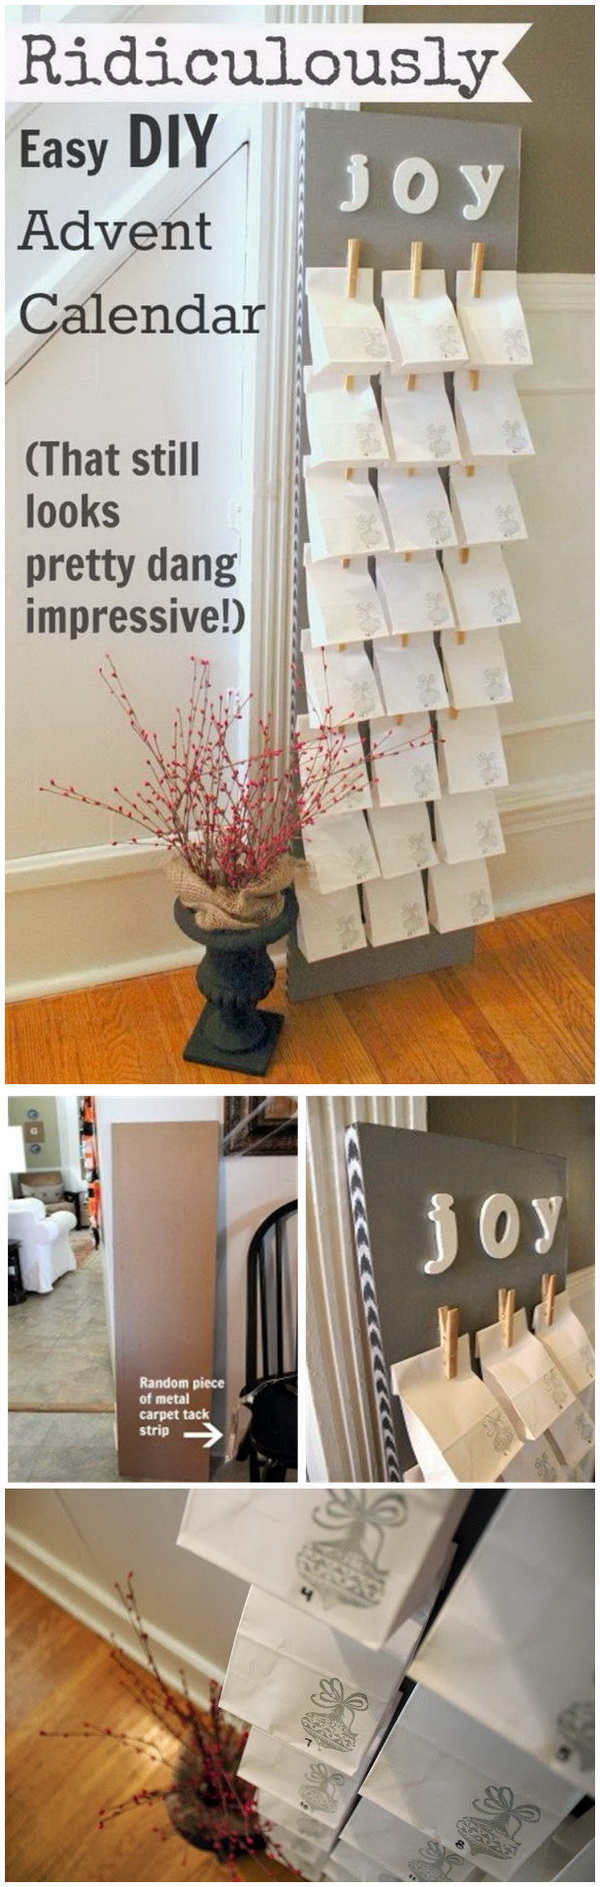 DIY Leaning Paper Bag Advent Calendar.